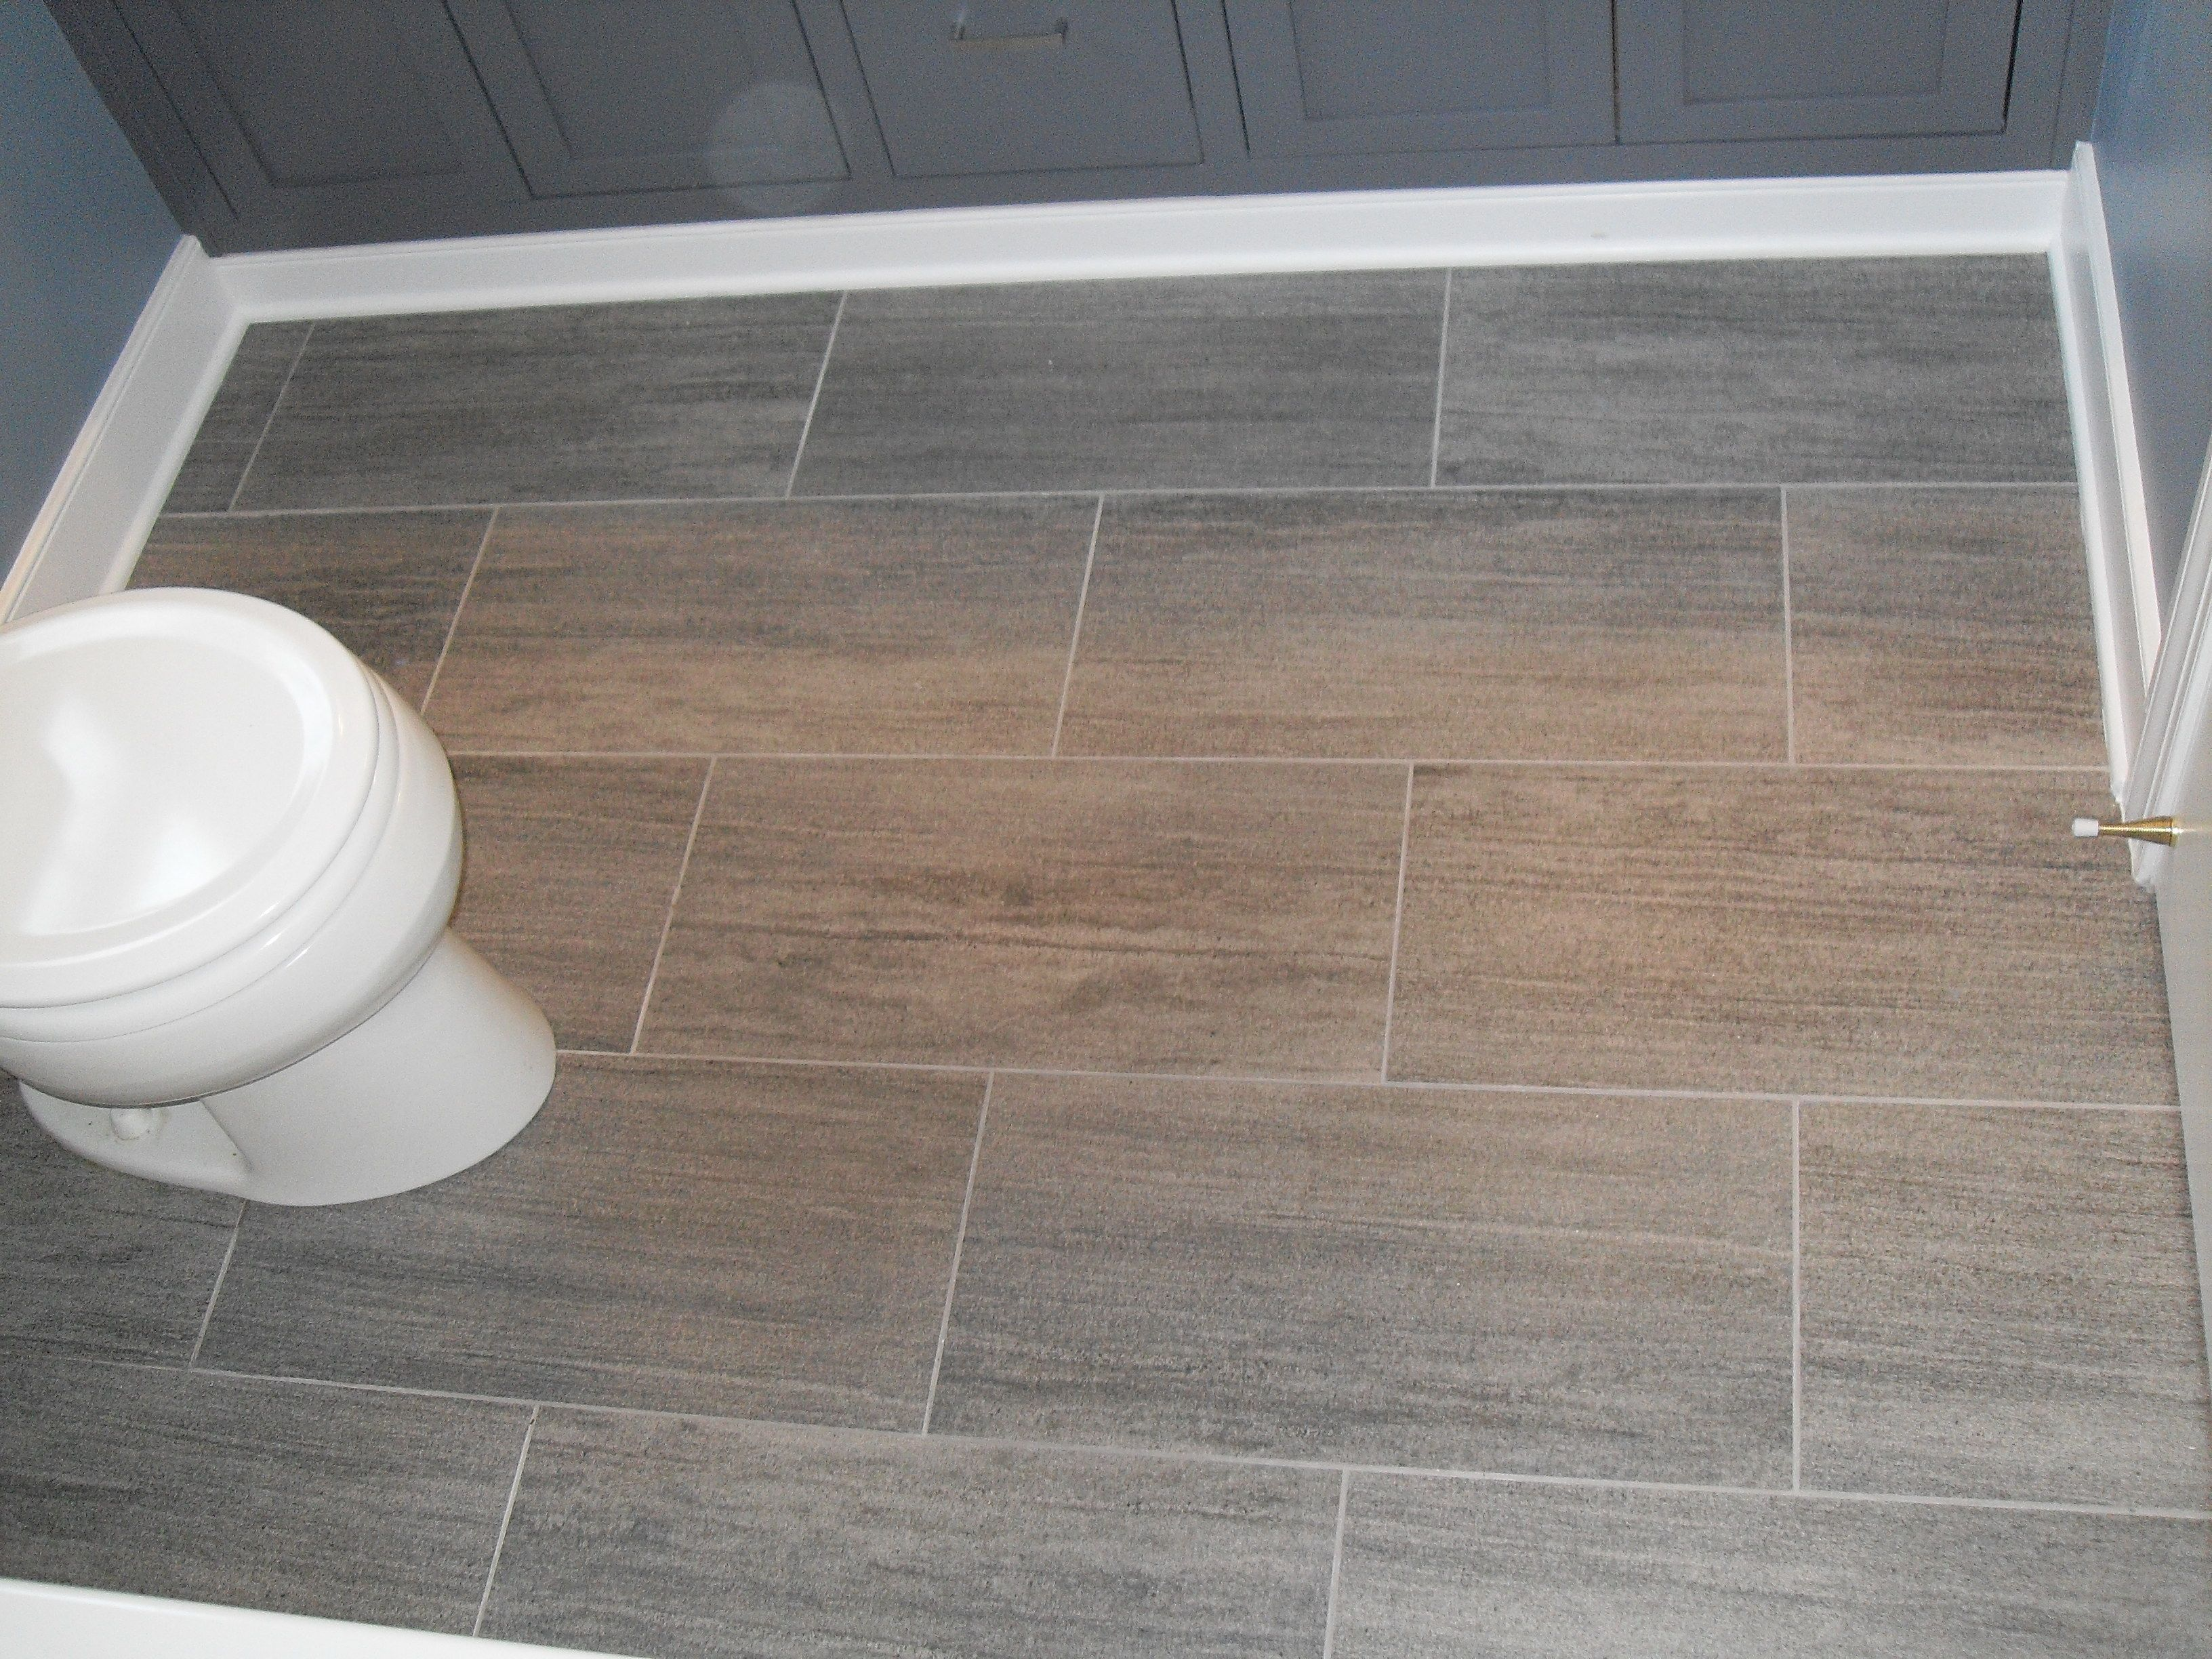 Easy To Keep Clean Similar To Drift Wood In Tone Large Tile For - Installing tile floor in bathroom